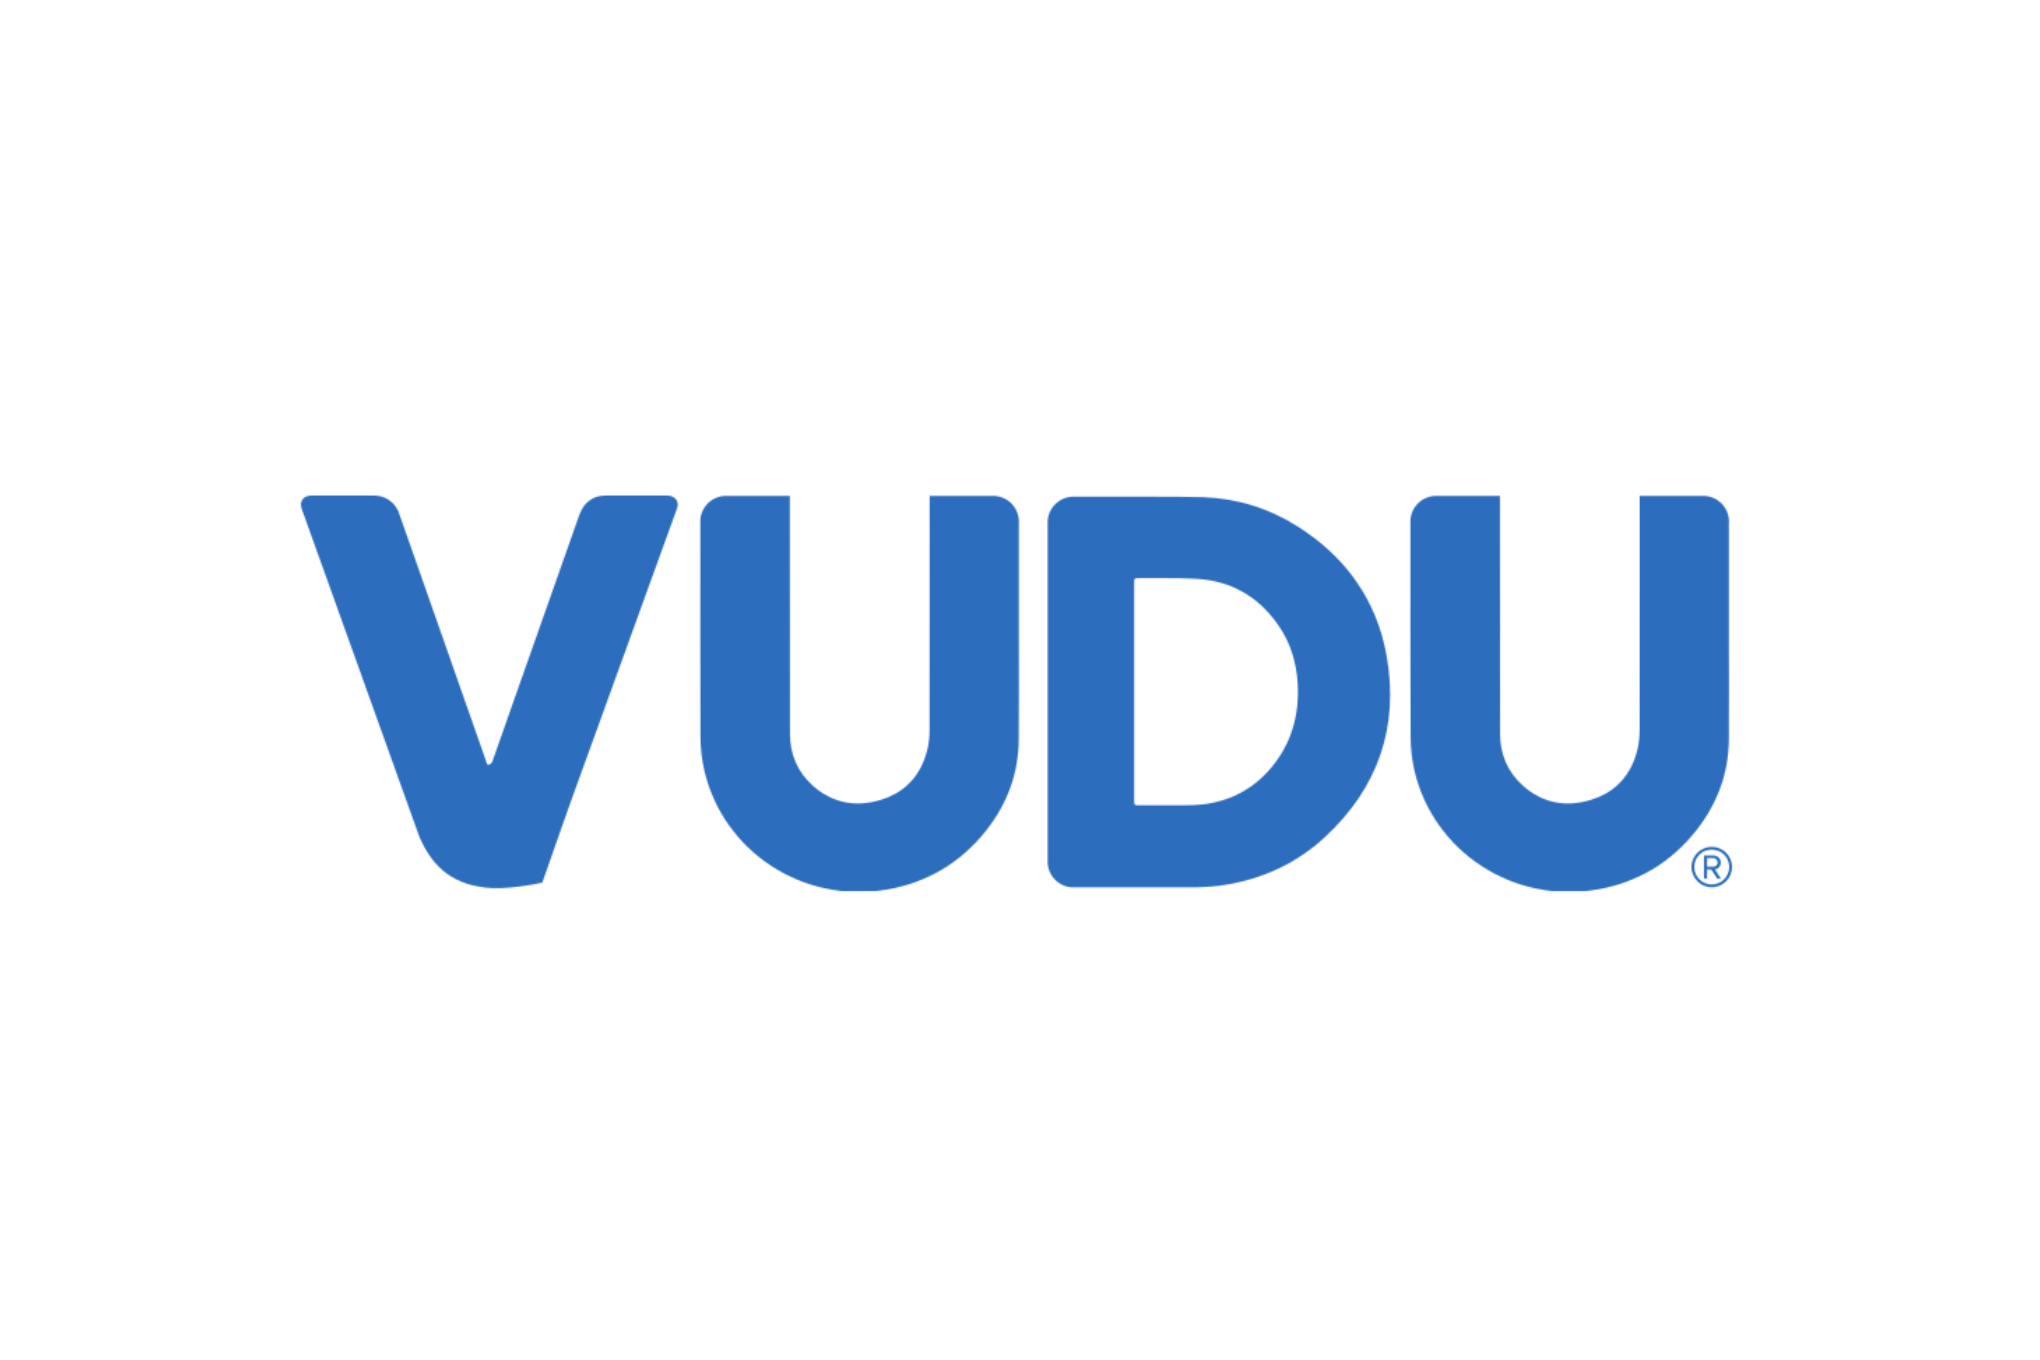 Walmart may bring 'shoppable' TV shows and movies to Vudu in 2019